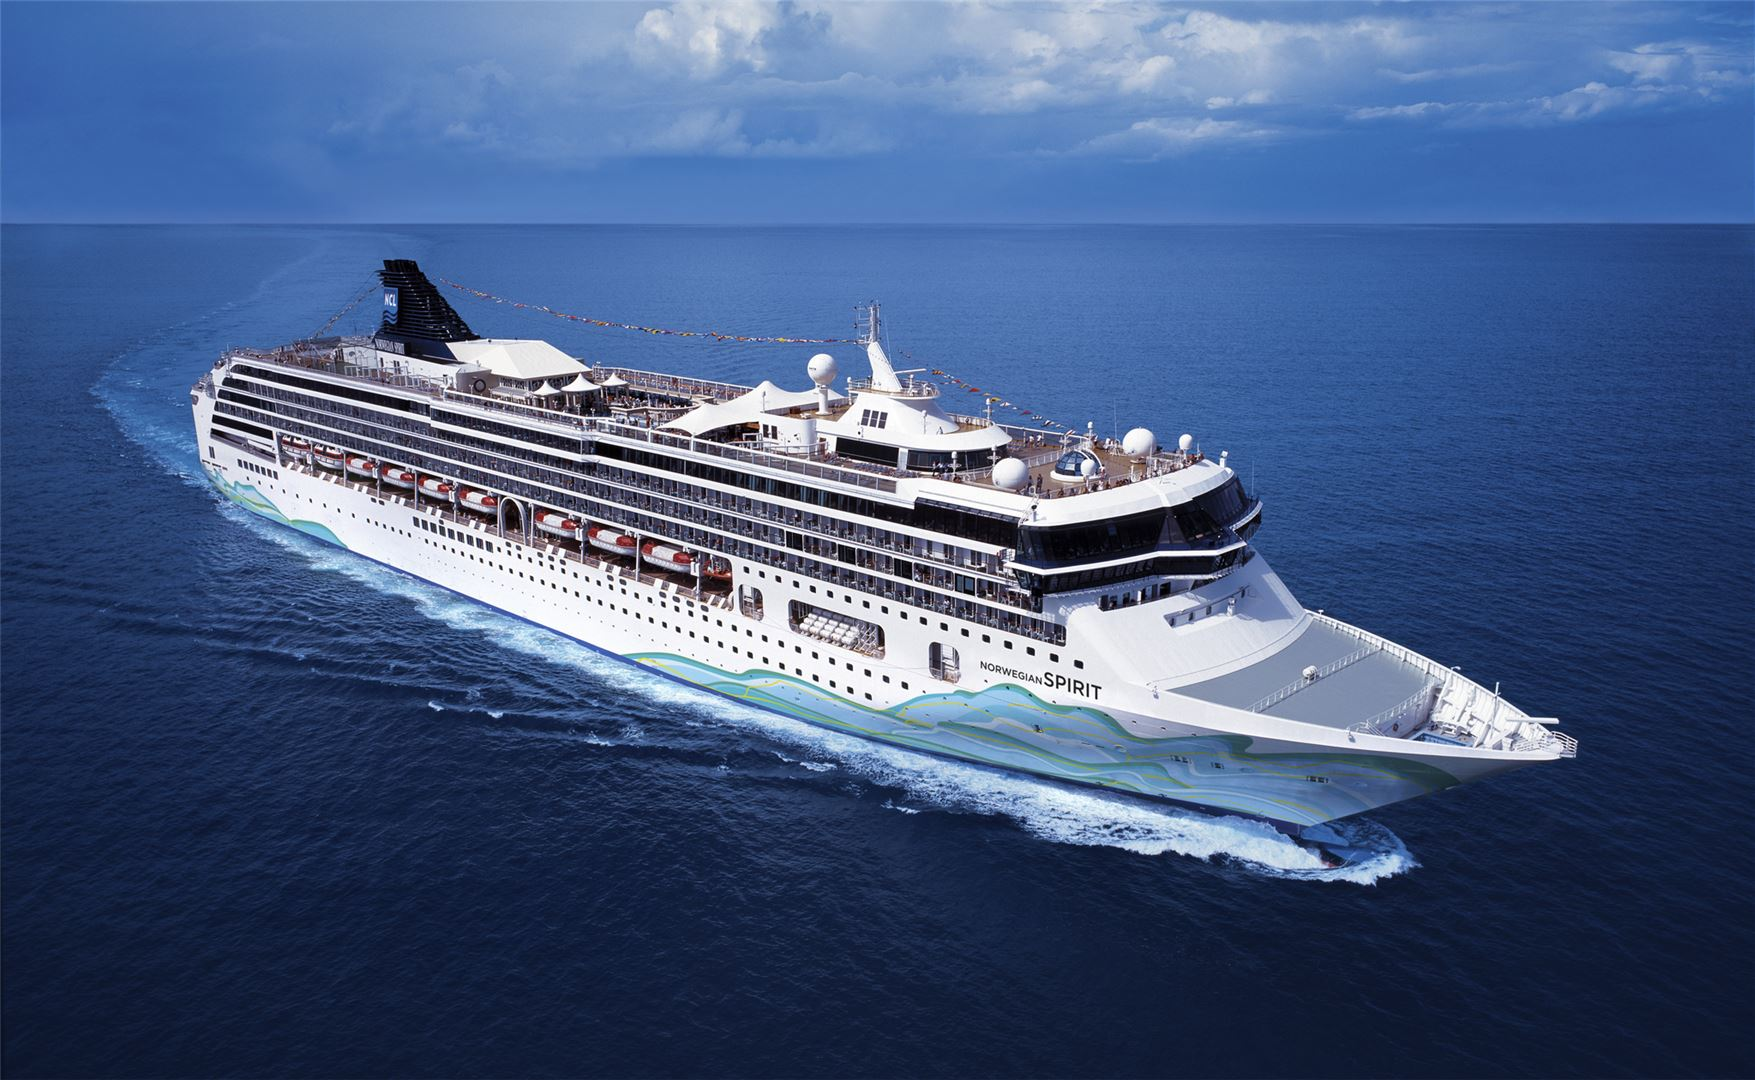 Norwegian Spirit Getting $100 Million Renovation